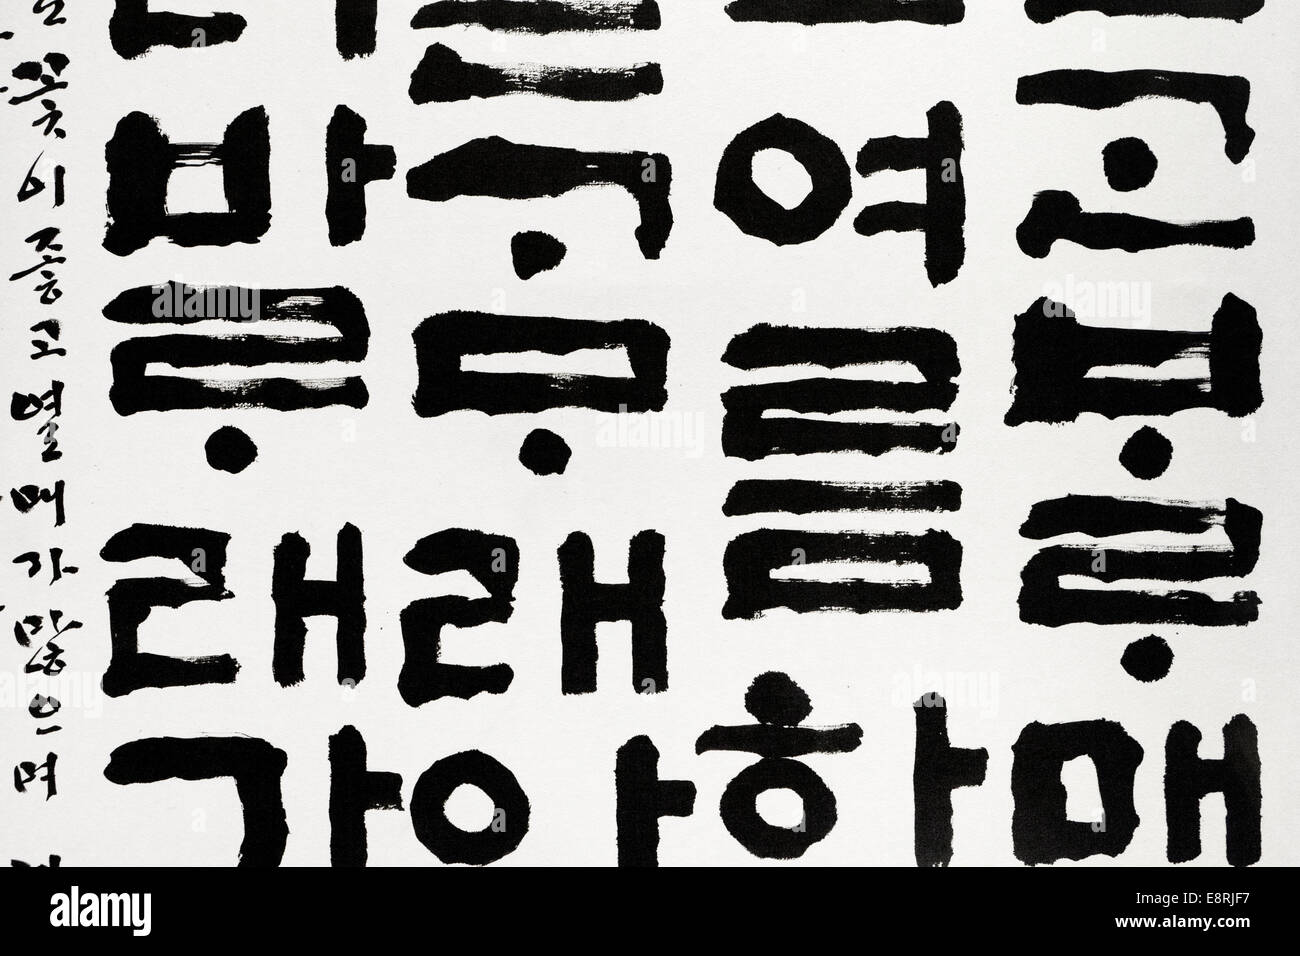 Ancient Korean Calligraphy Showing Some Obsolete Letters